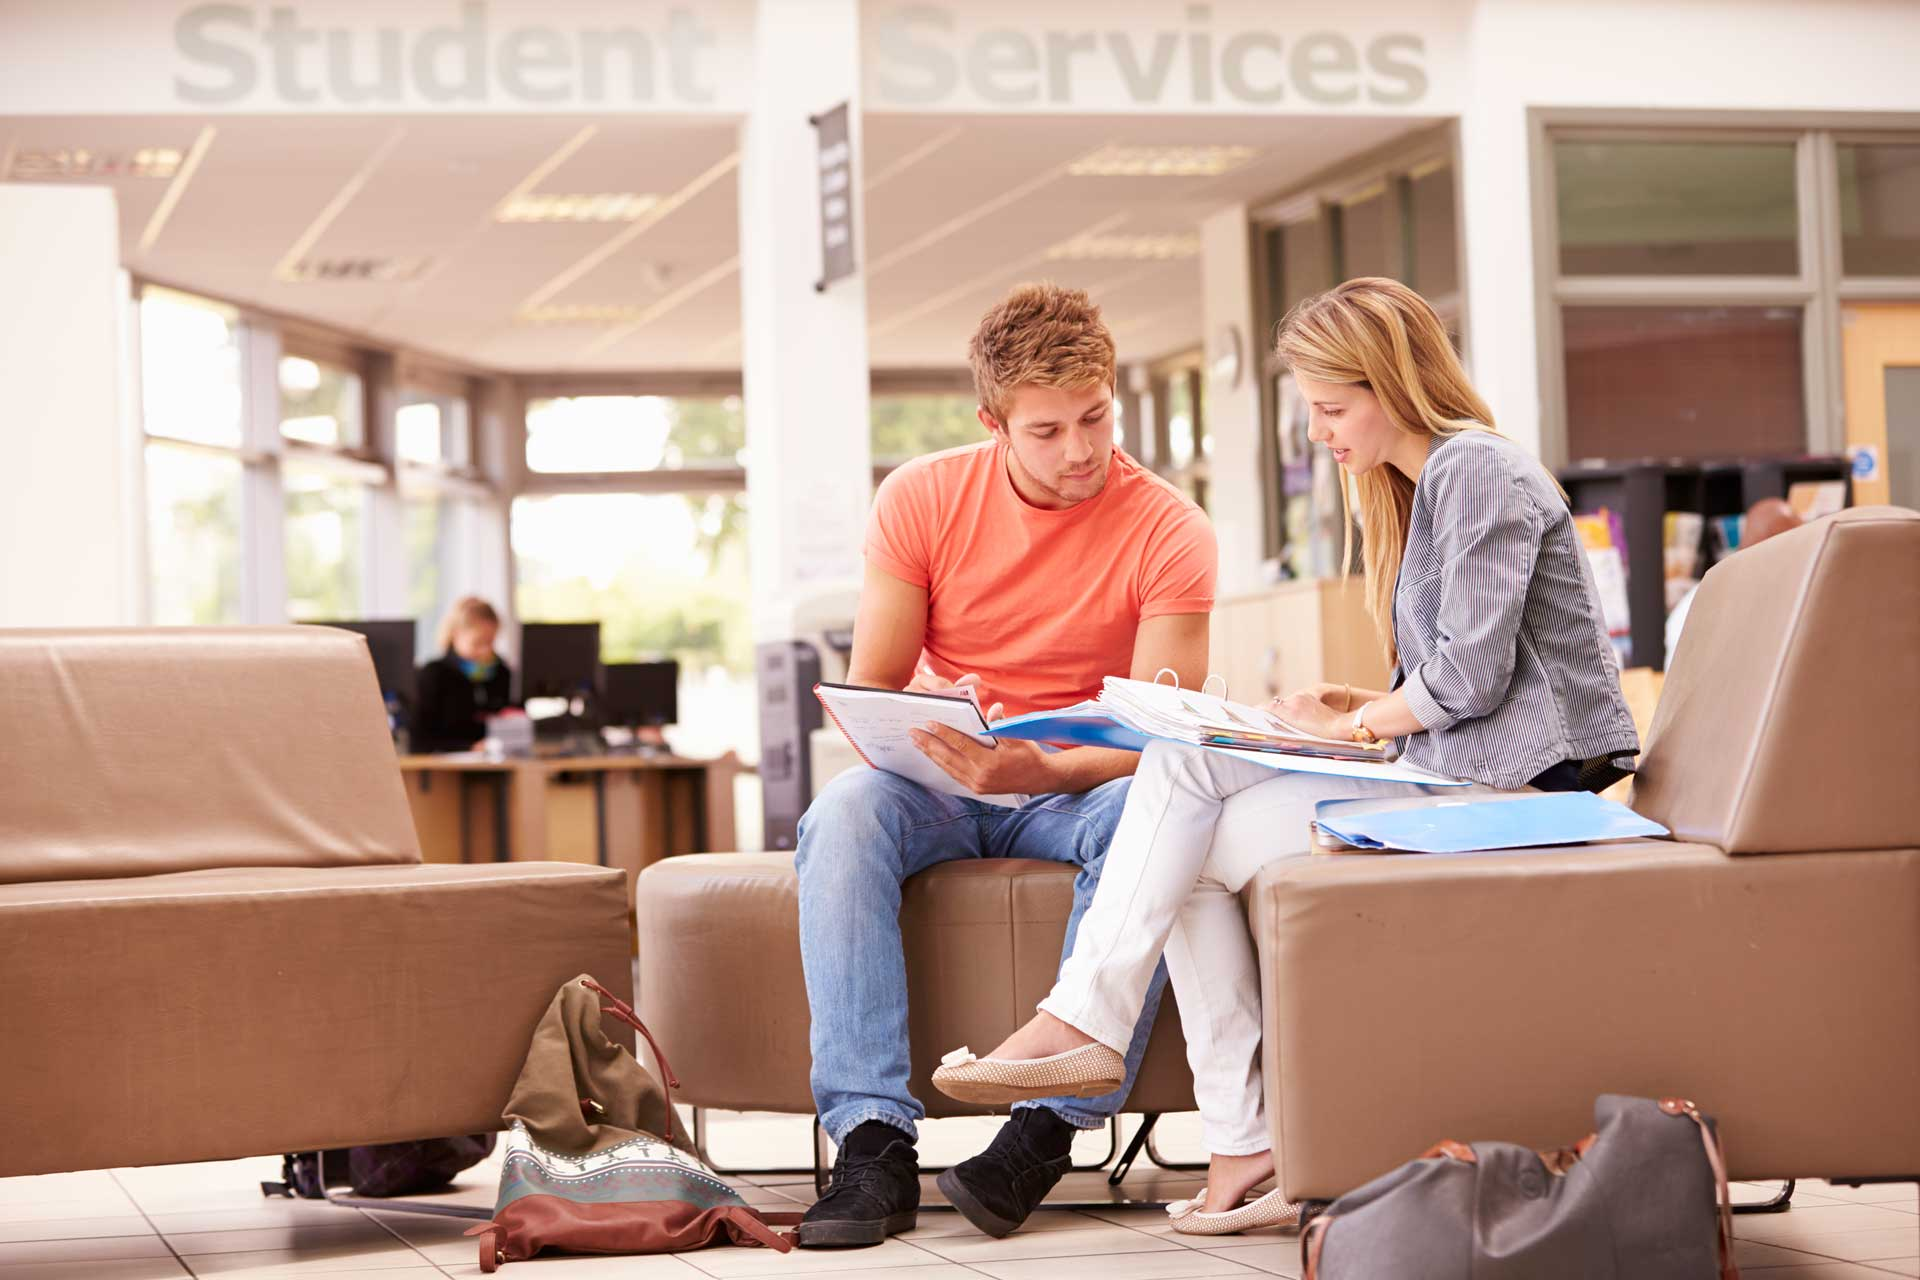 male-college-student-working-with-mentor-PEAAB3Z.jpg